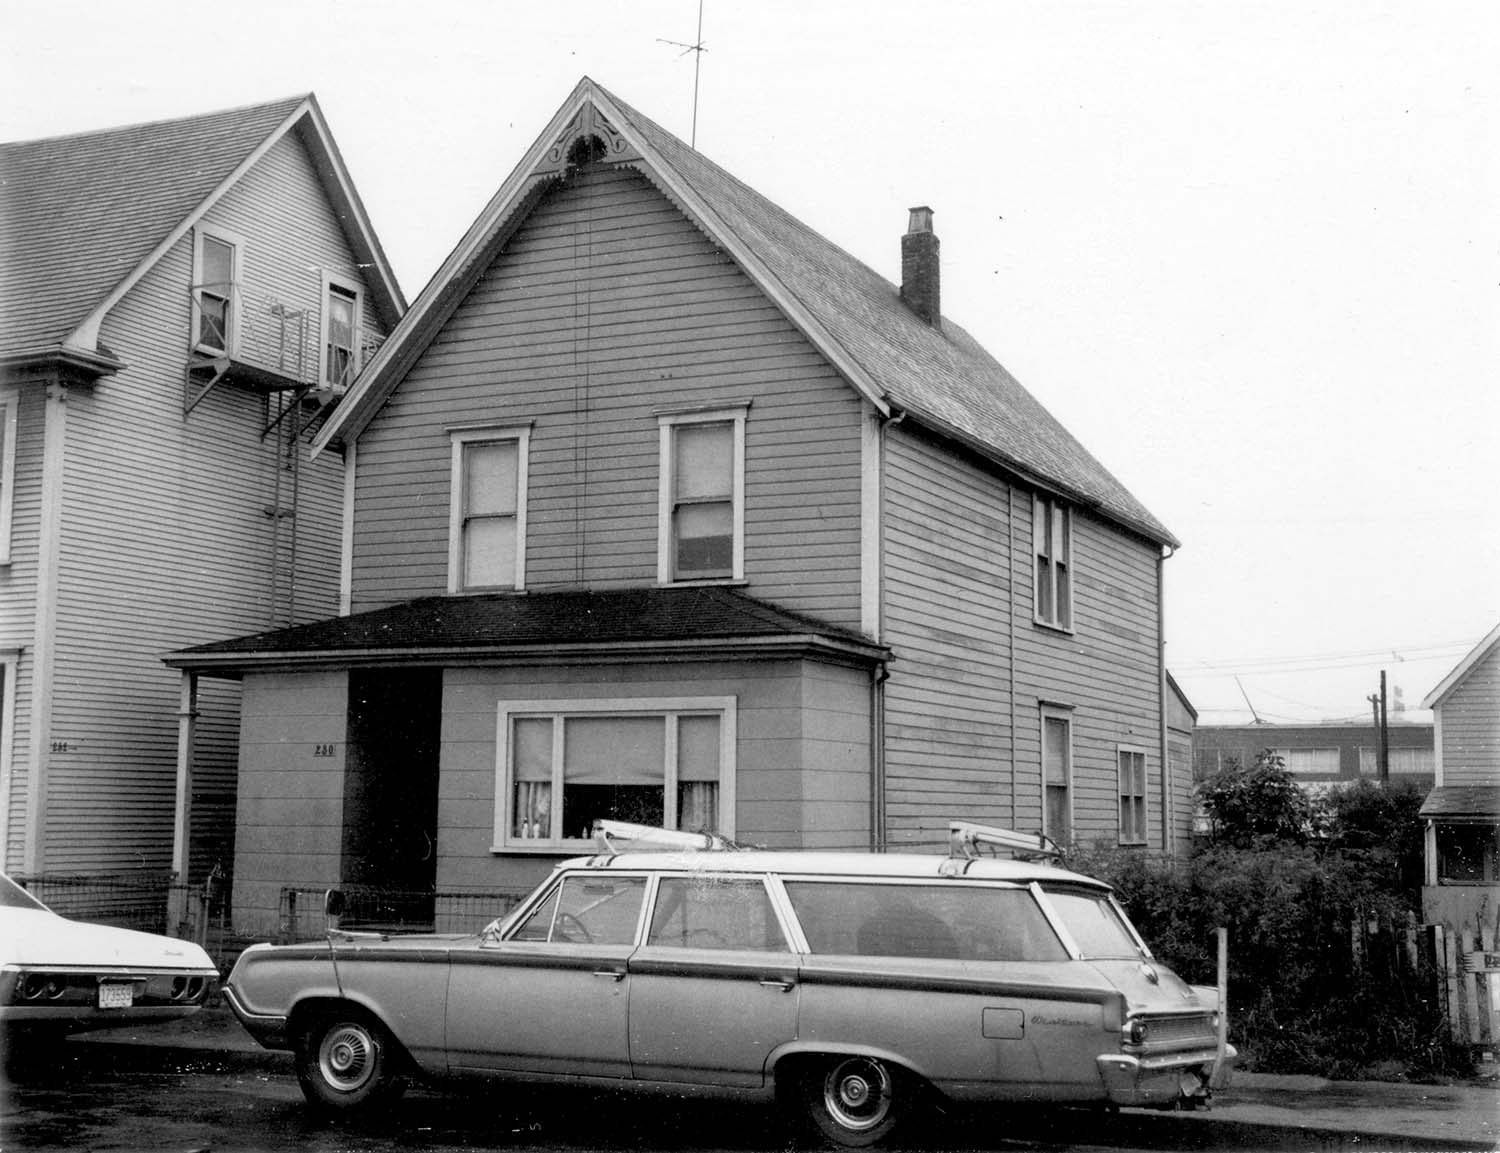 230 Union Street, front, 1968. Photograph also shows portion of 232 Union Street.Reference code COV-S168-: CVA 203-42